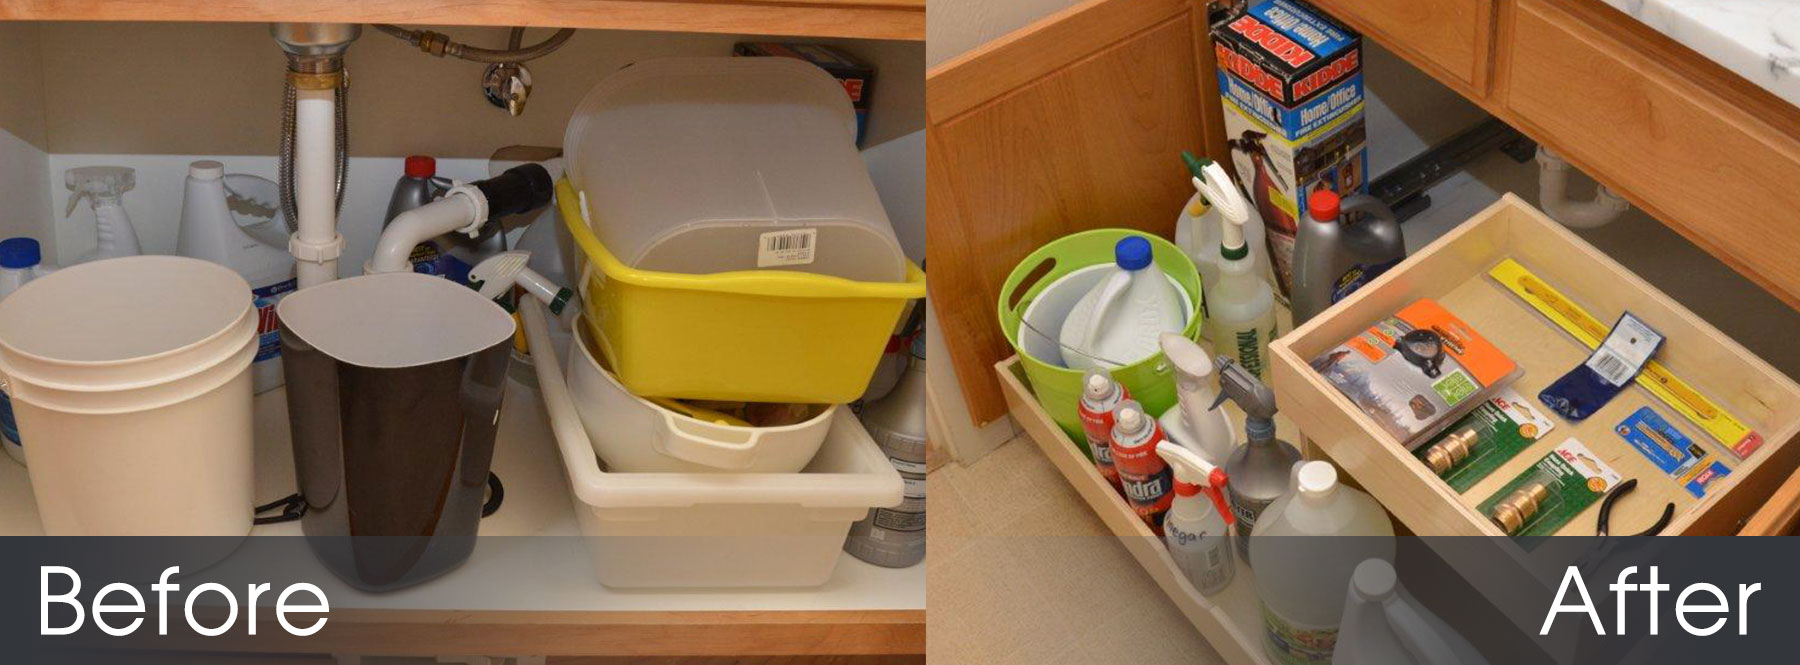 Before / After Shelve Image 4